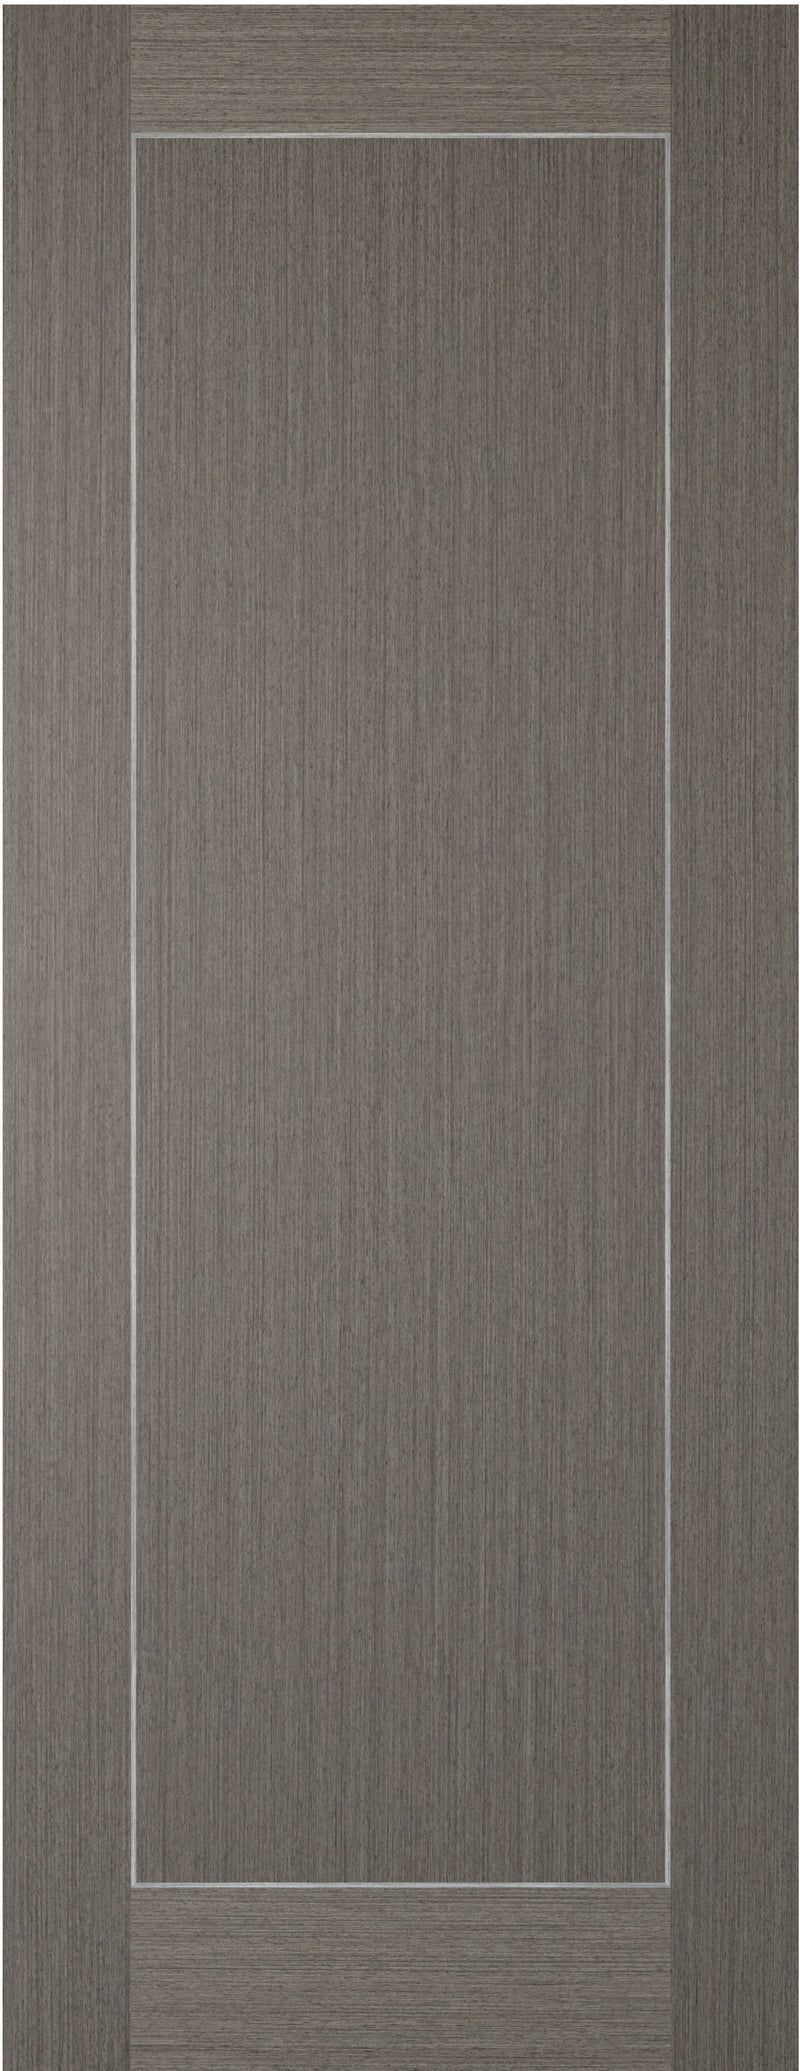 Hampshire Light Grey Prefinished